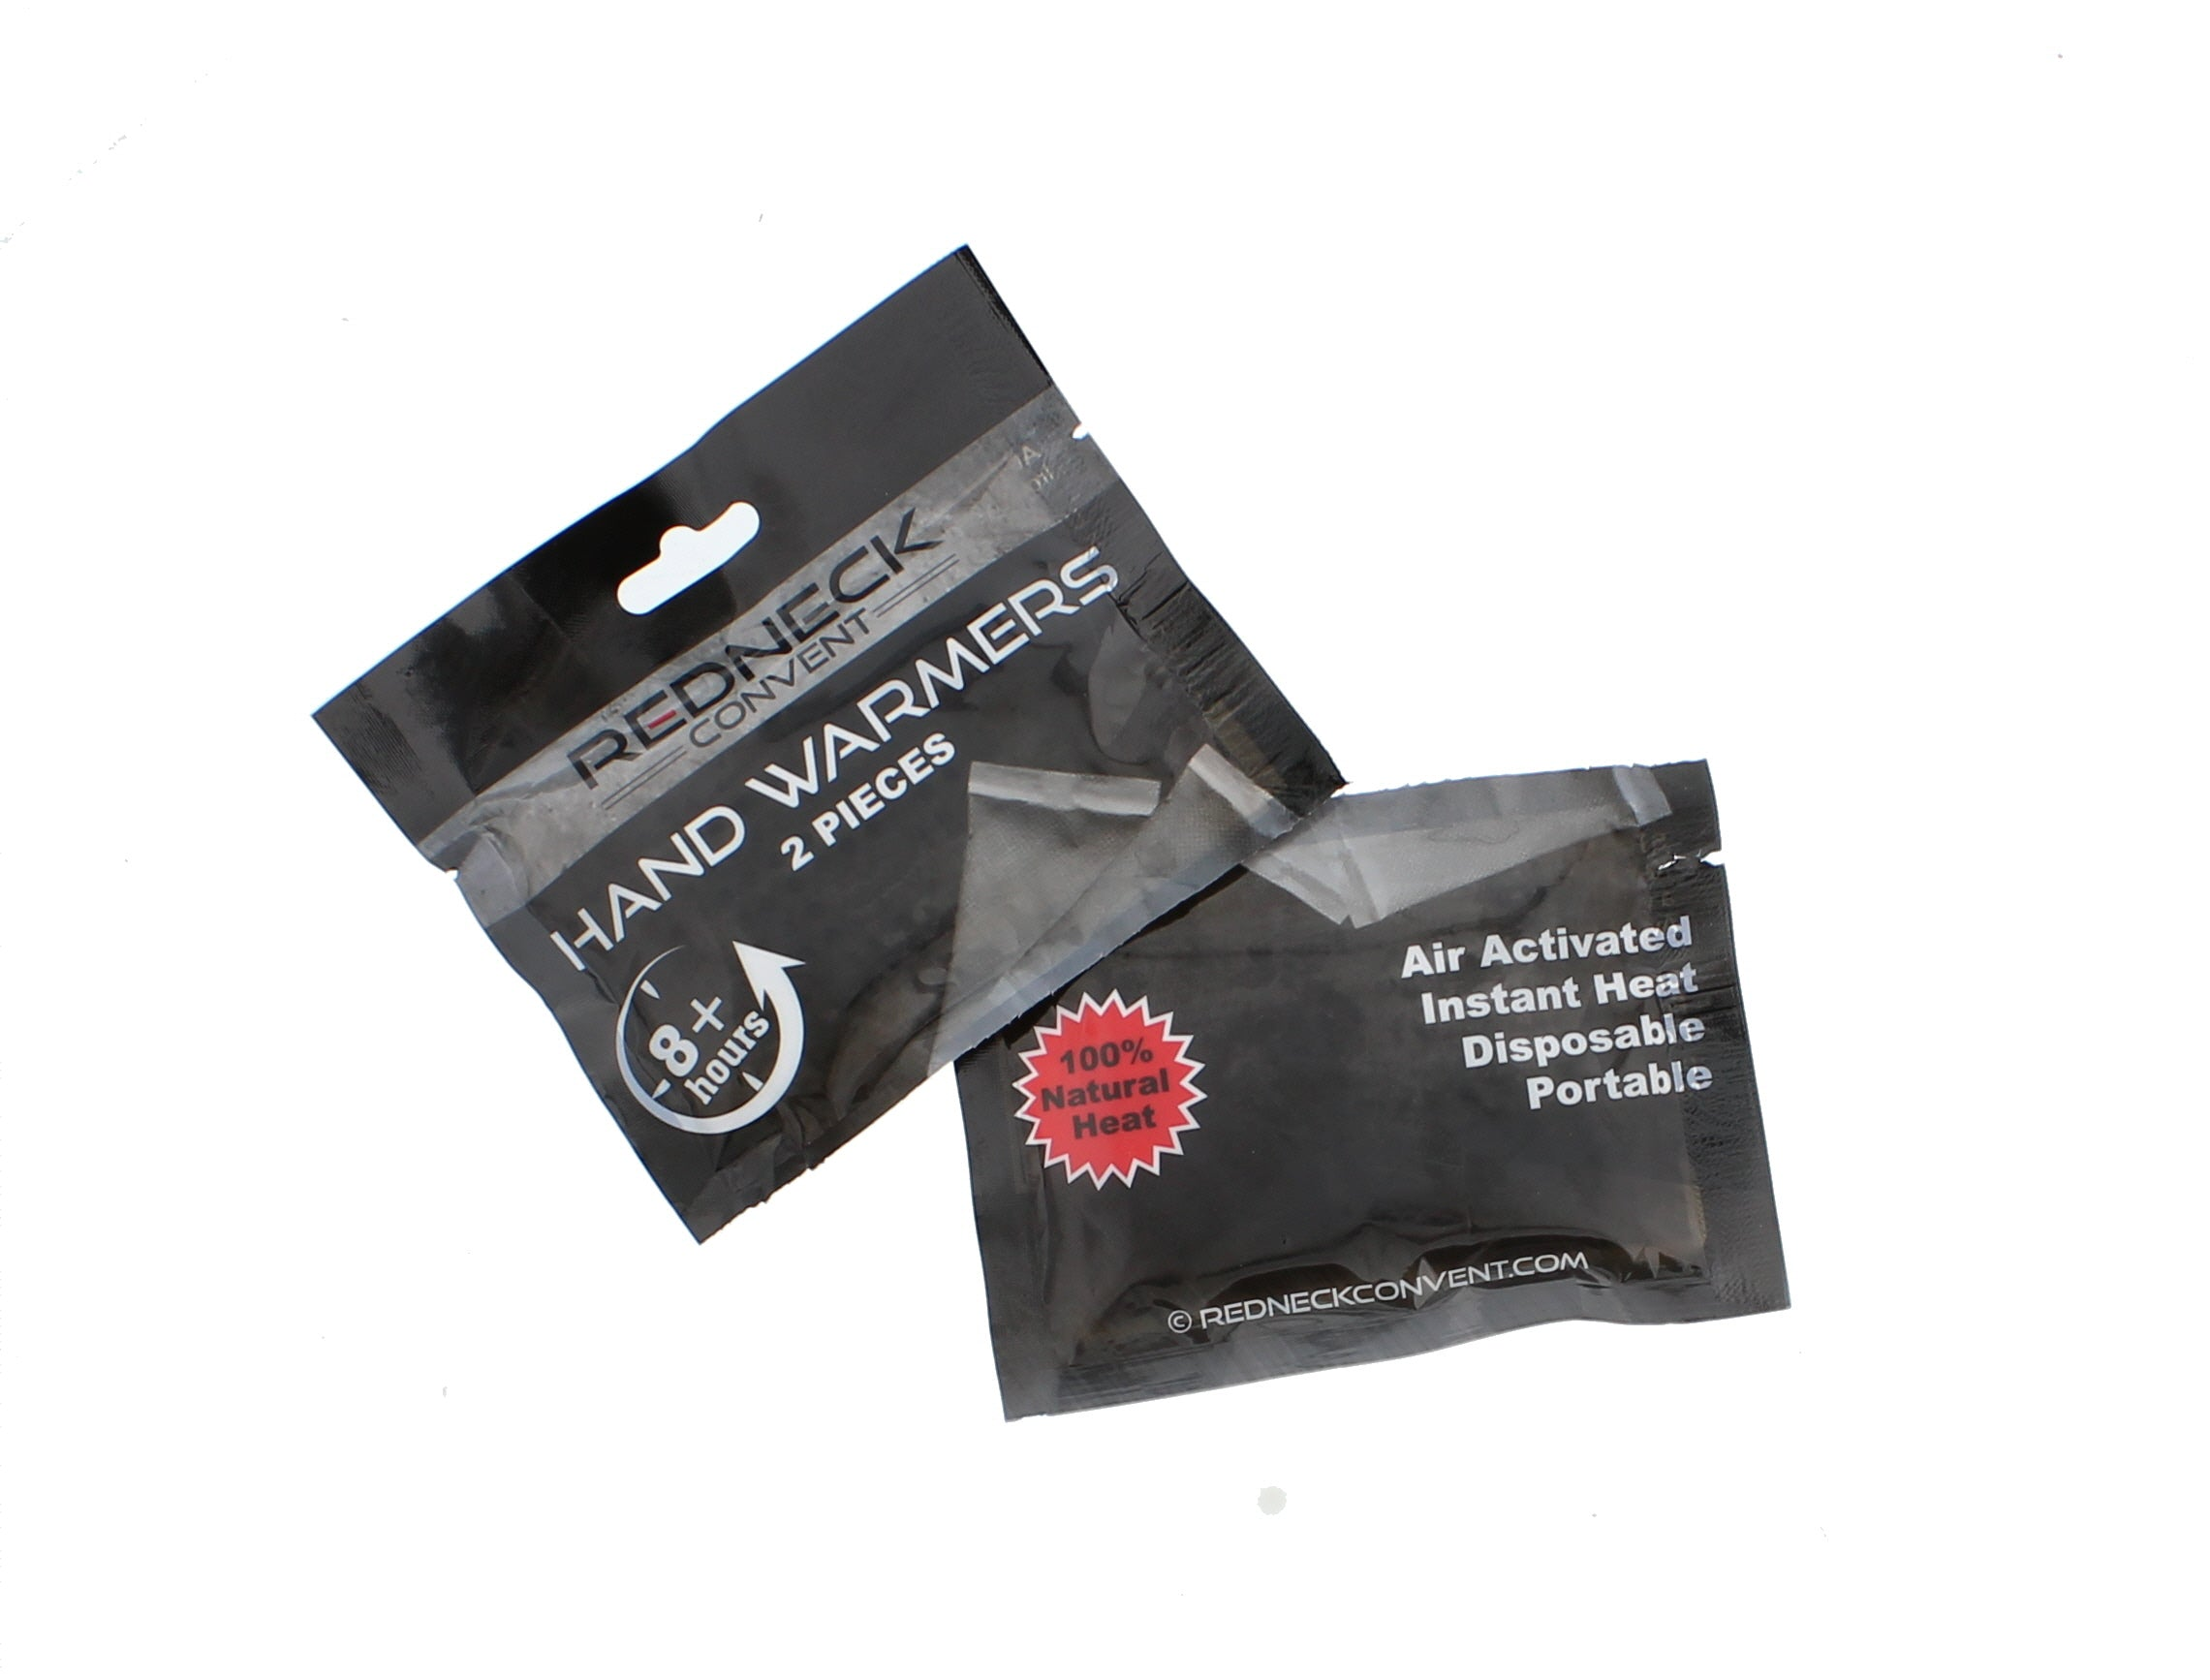 Hand Warmers - 10-pair, 8 Hour Powerful Heat, Air Activated Non-toxic